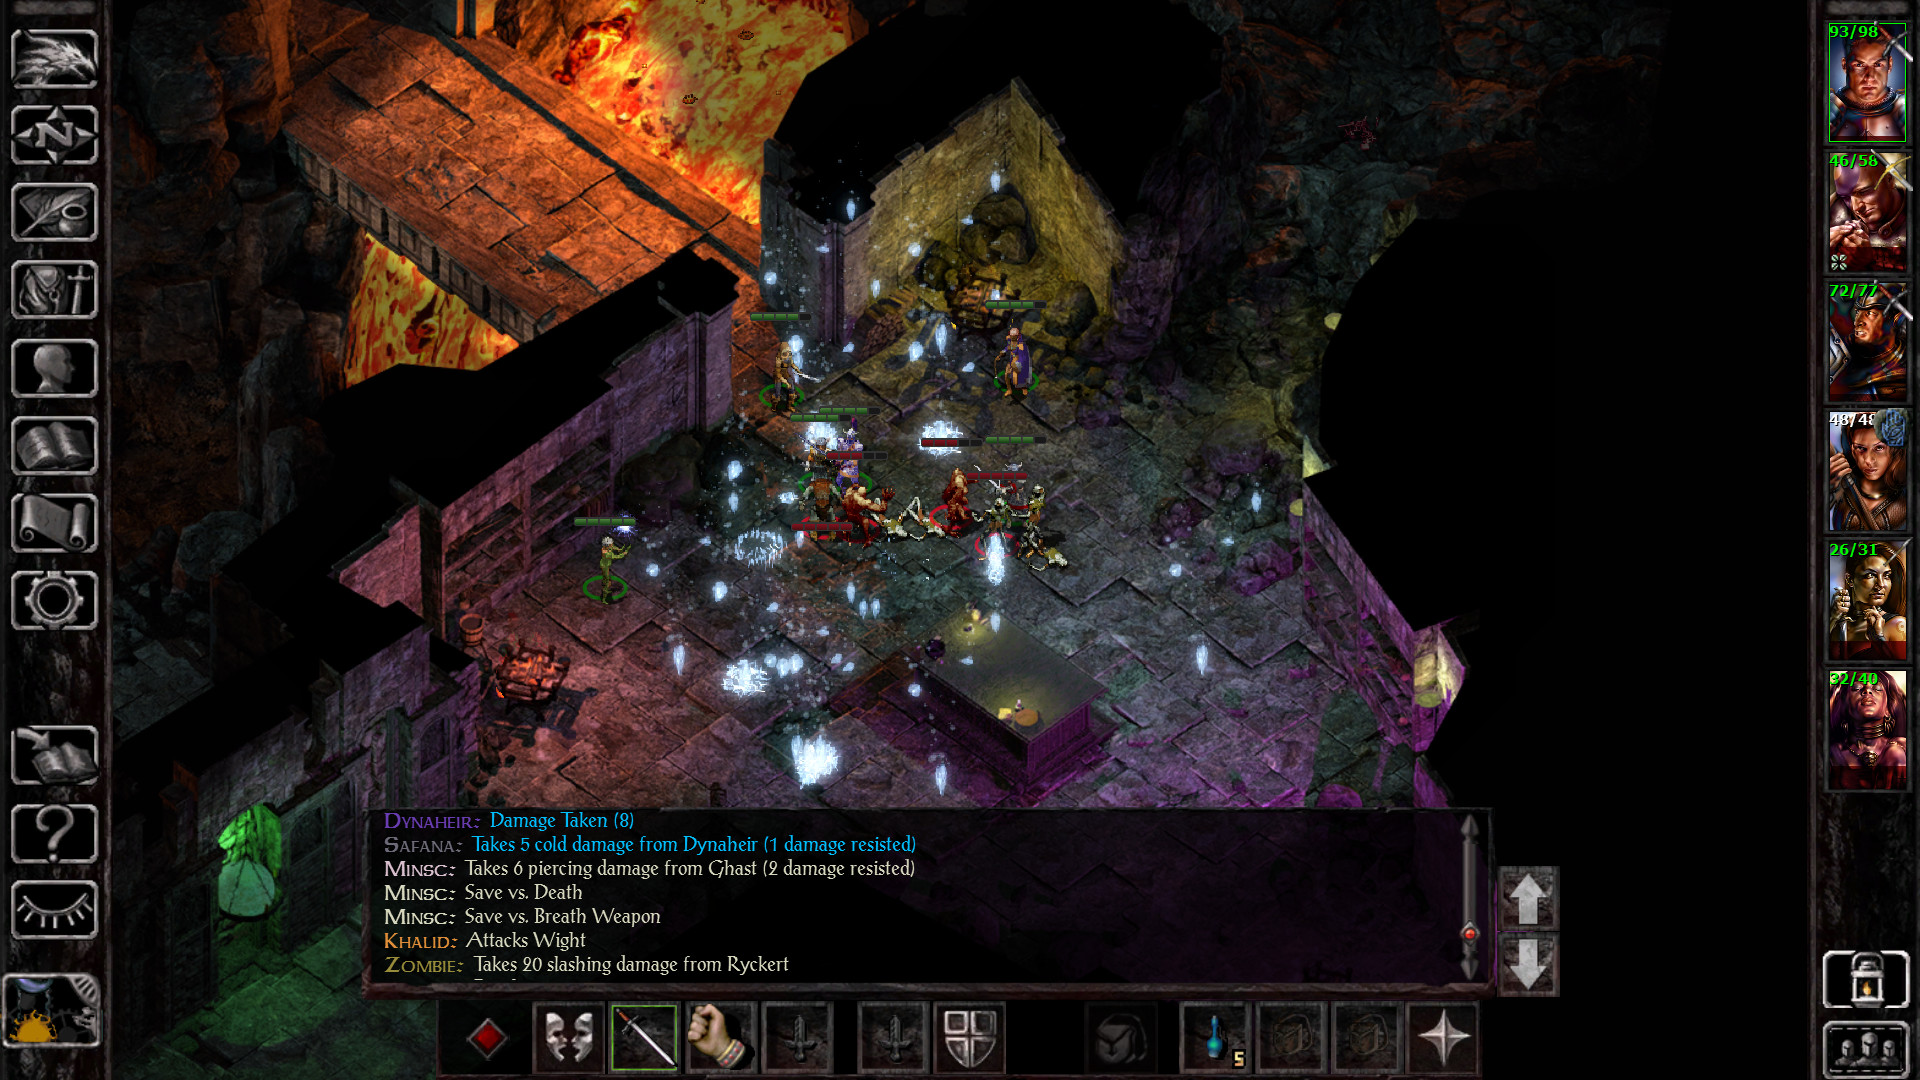 Baldurs Gate: Siege of Dragonspear screenshot 2